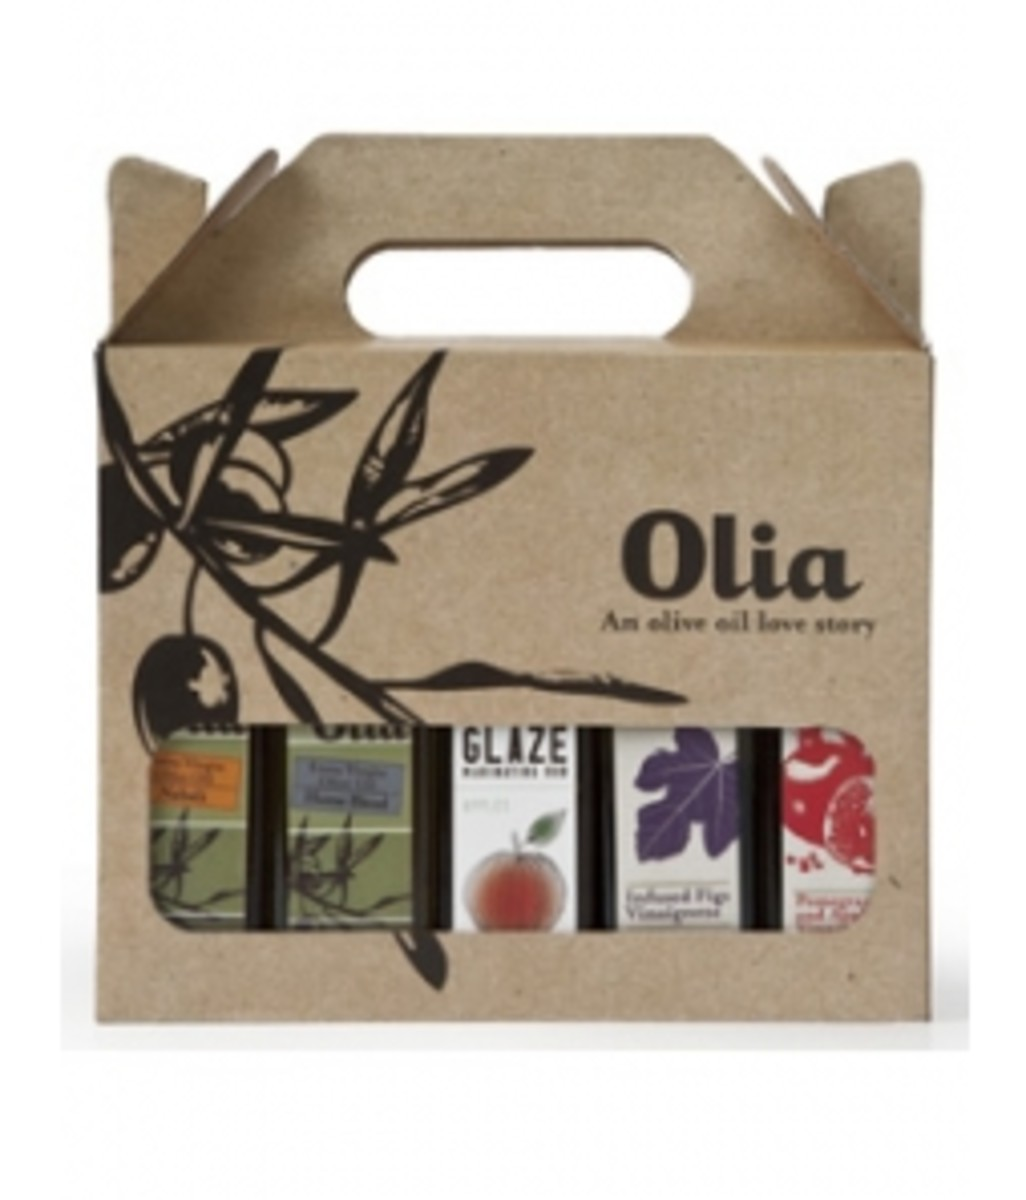 olia kosher gift package